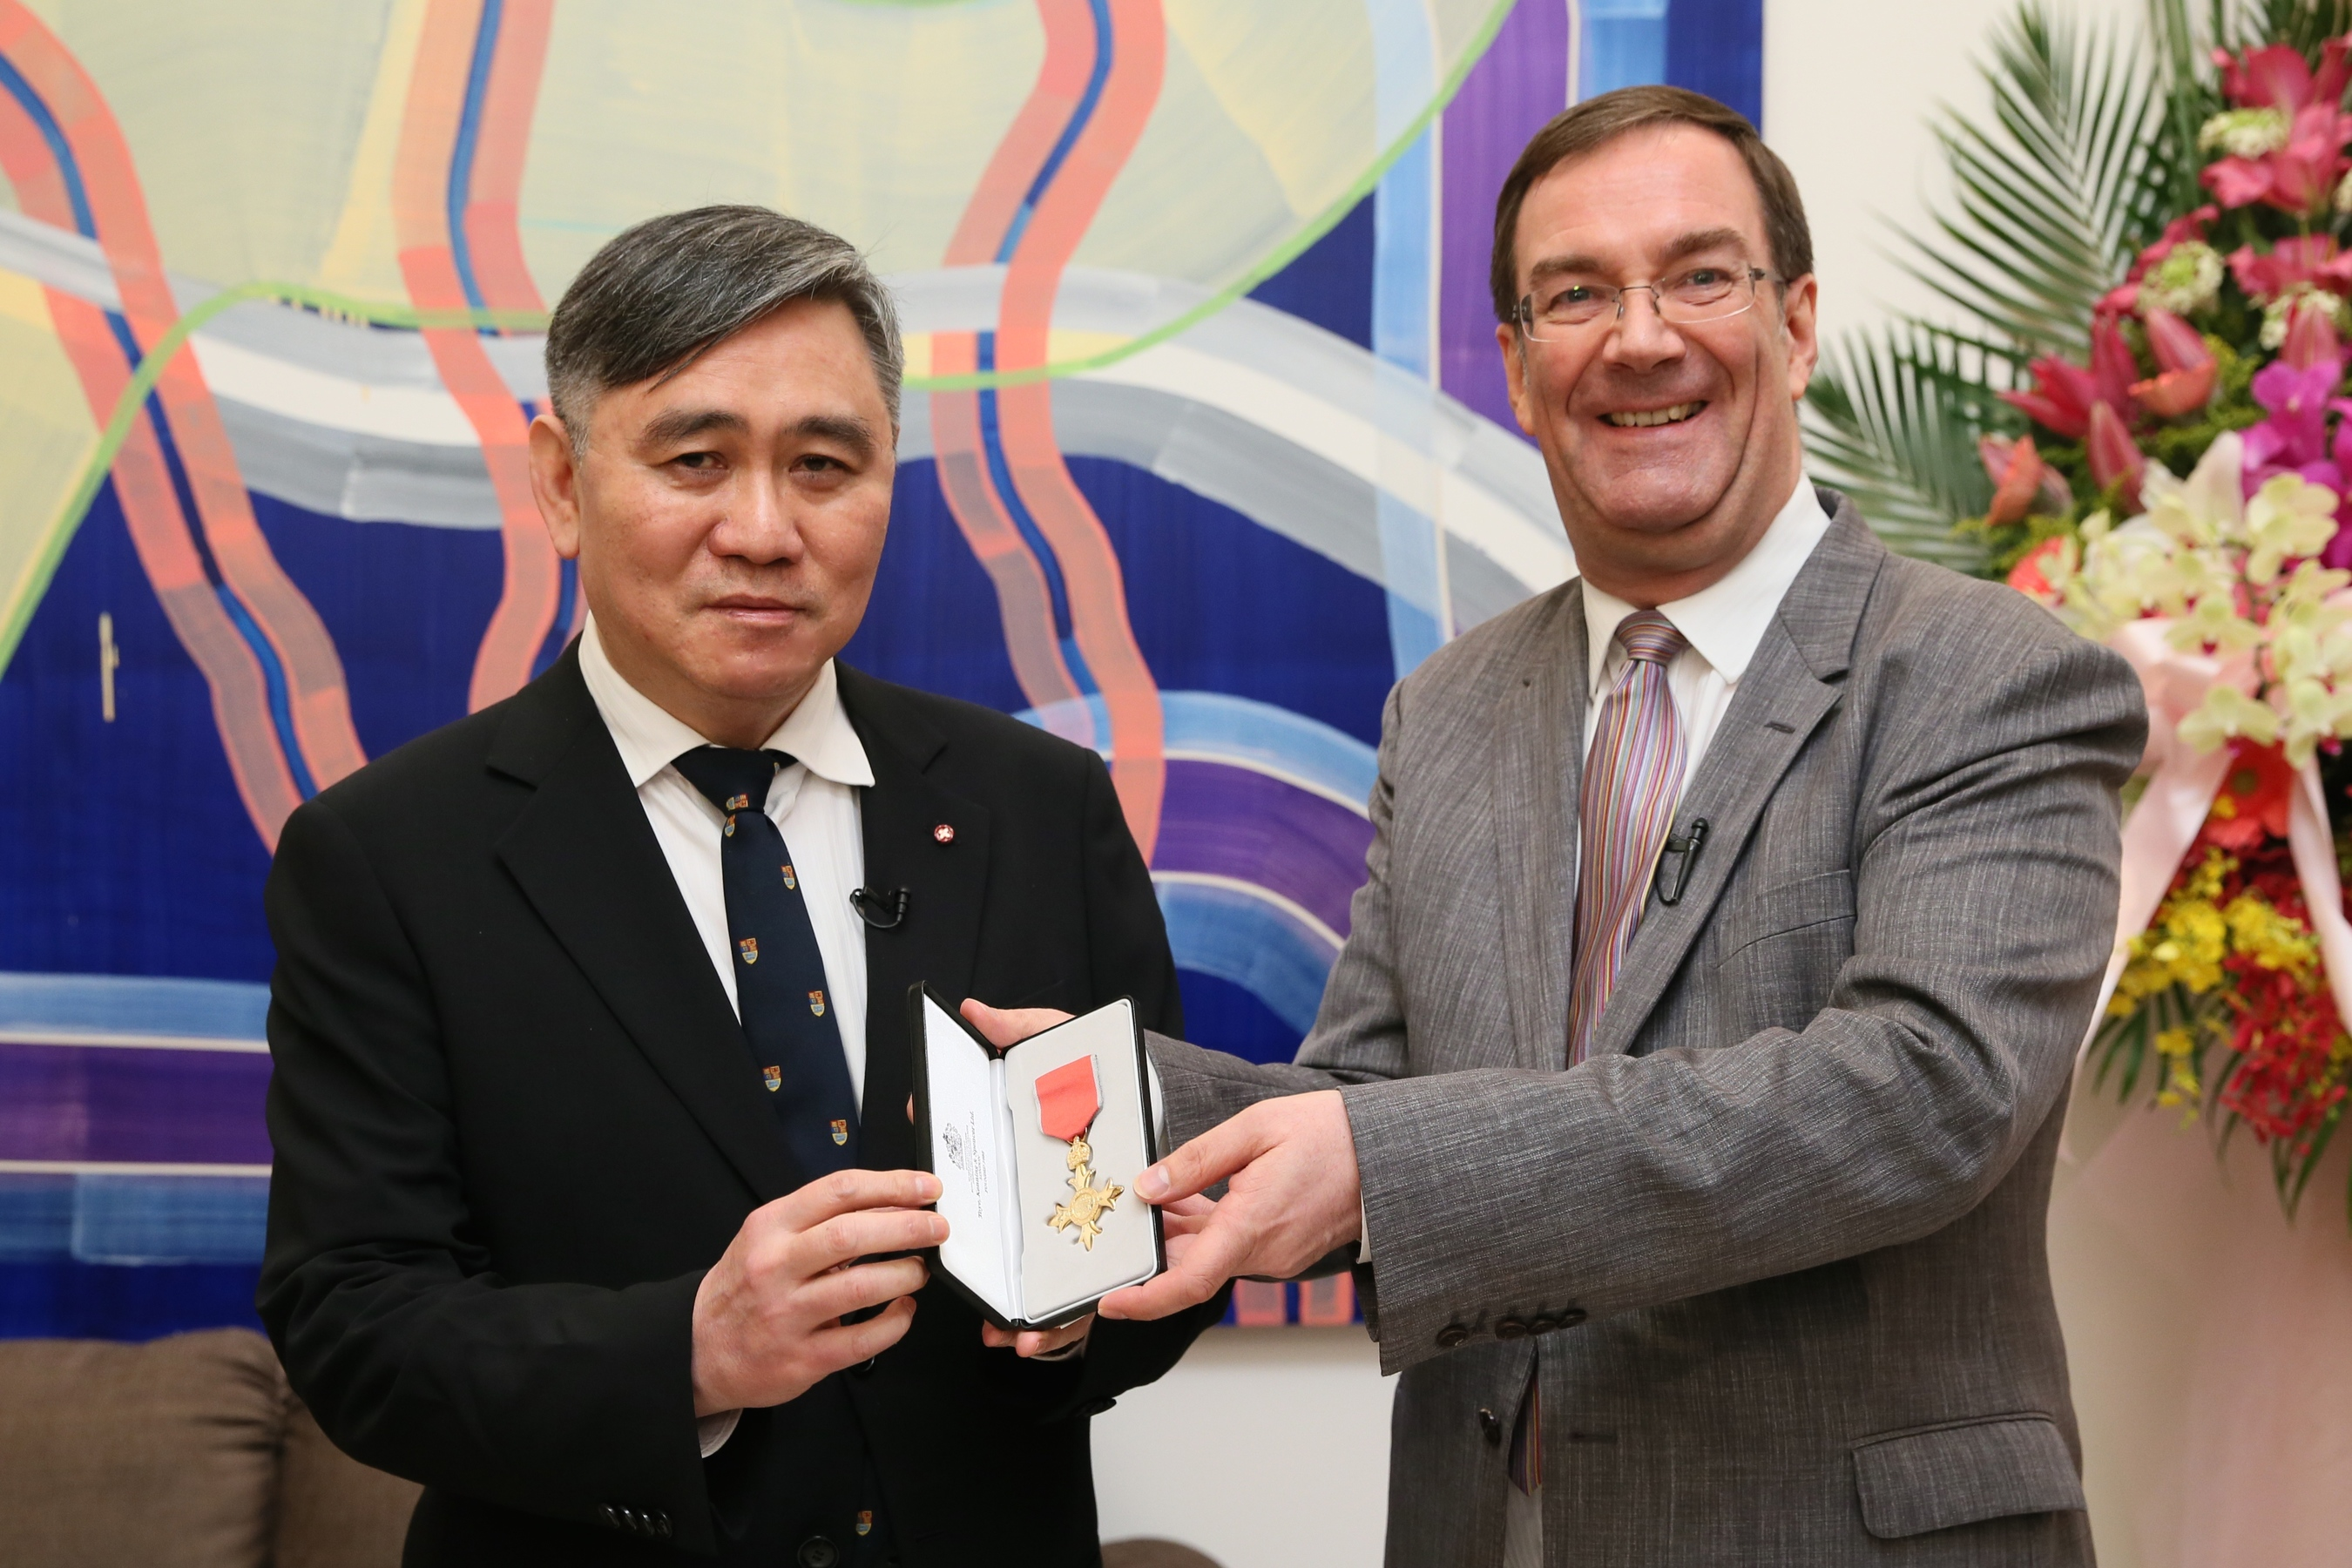 British Representative Chris Wood presents Dr. Winston Wong, OBE with the official insignia